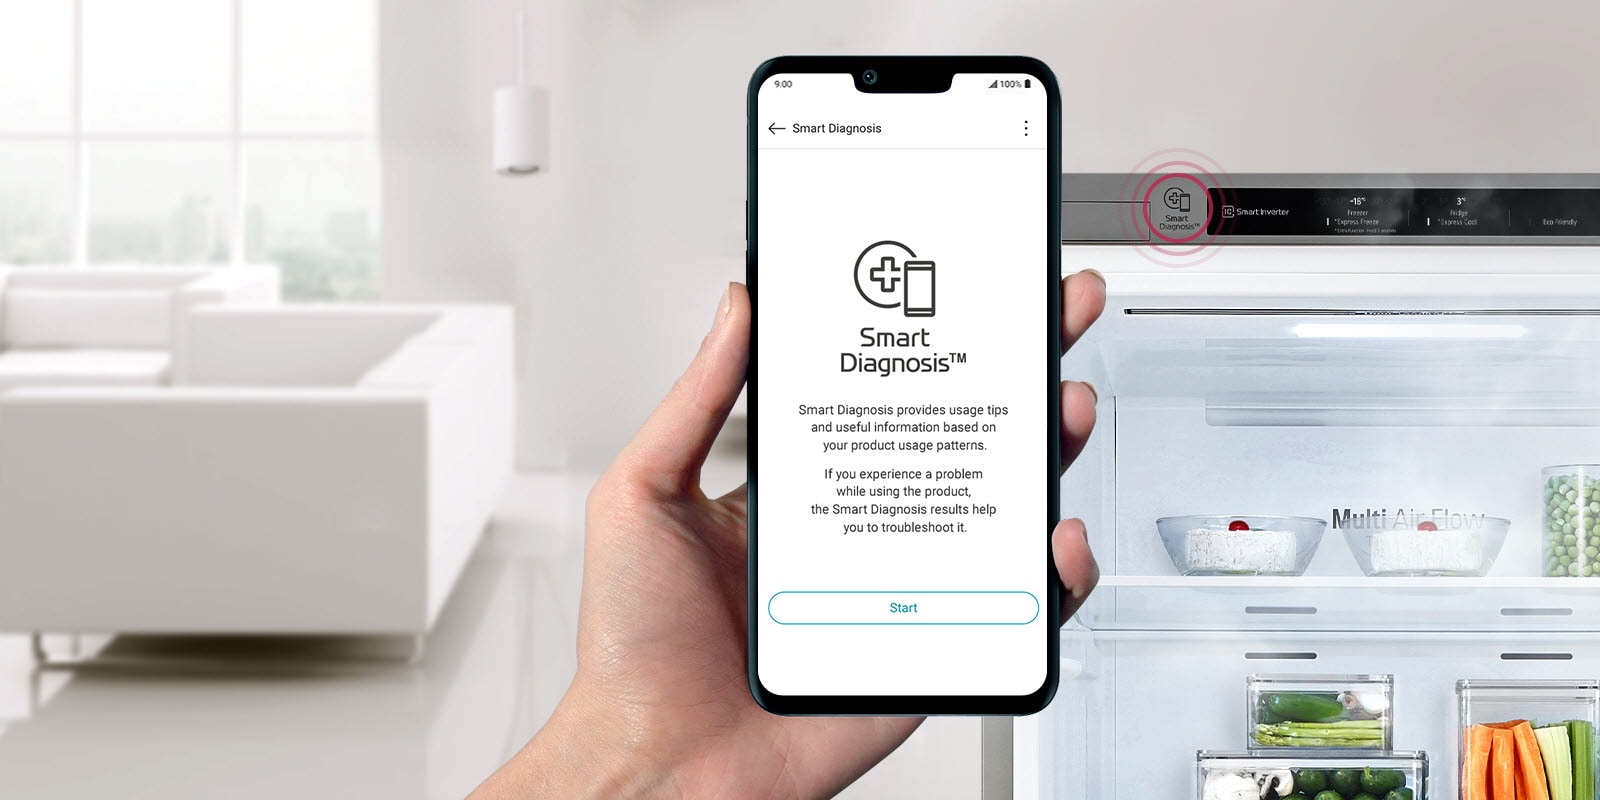 A hand holds a phone facing the front with a refrigerator in the background. The screen of the phone shows the Smart Diagnosis app for maintenance alerts.